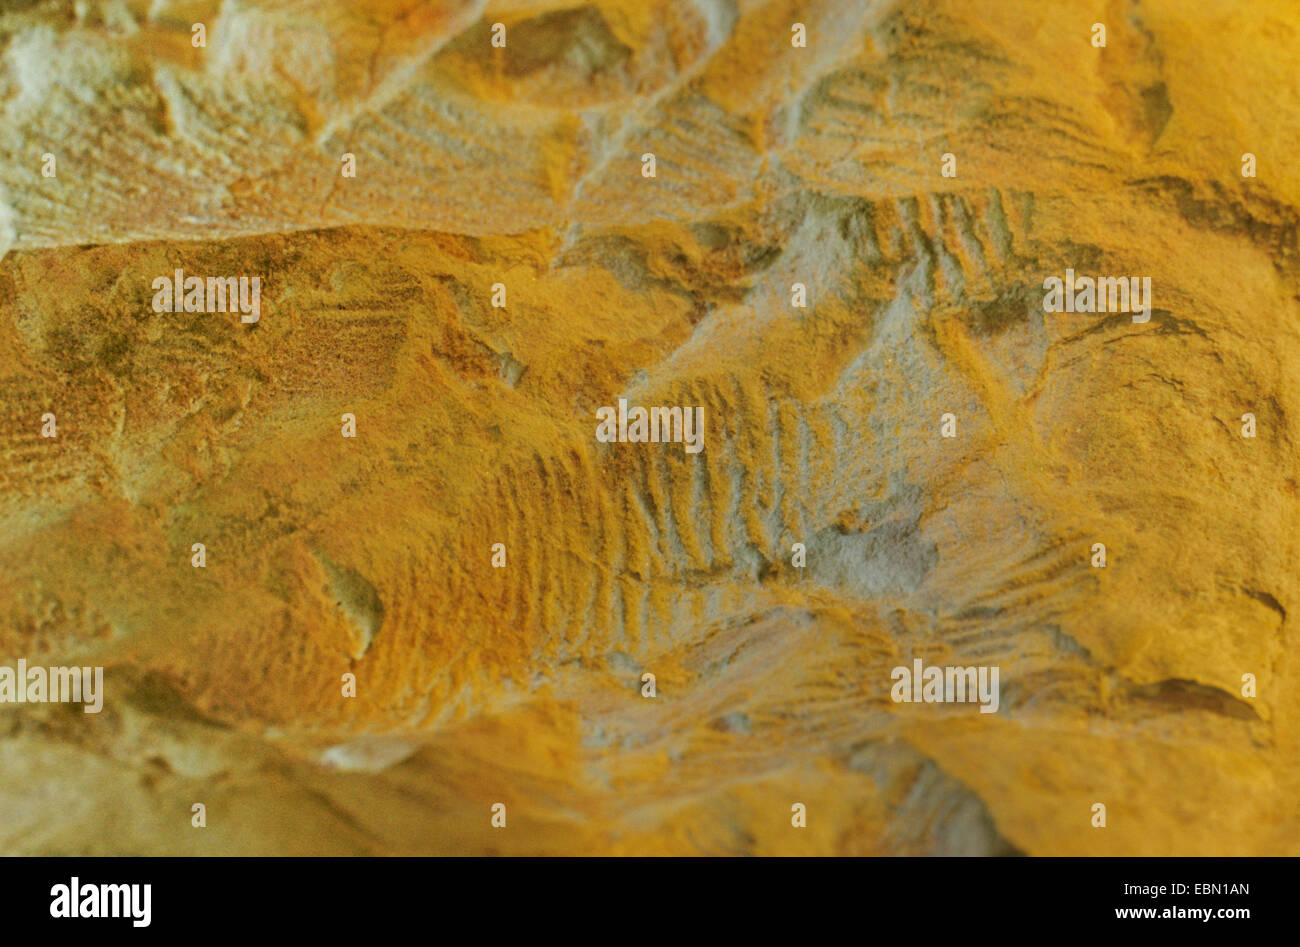 Rusophycus tracks in sandstone - Stock Image